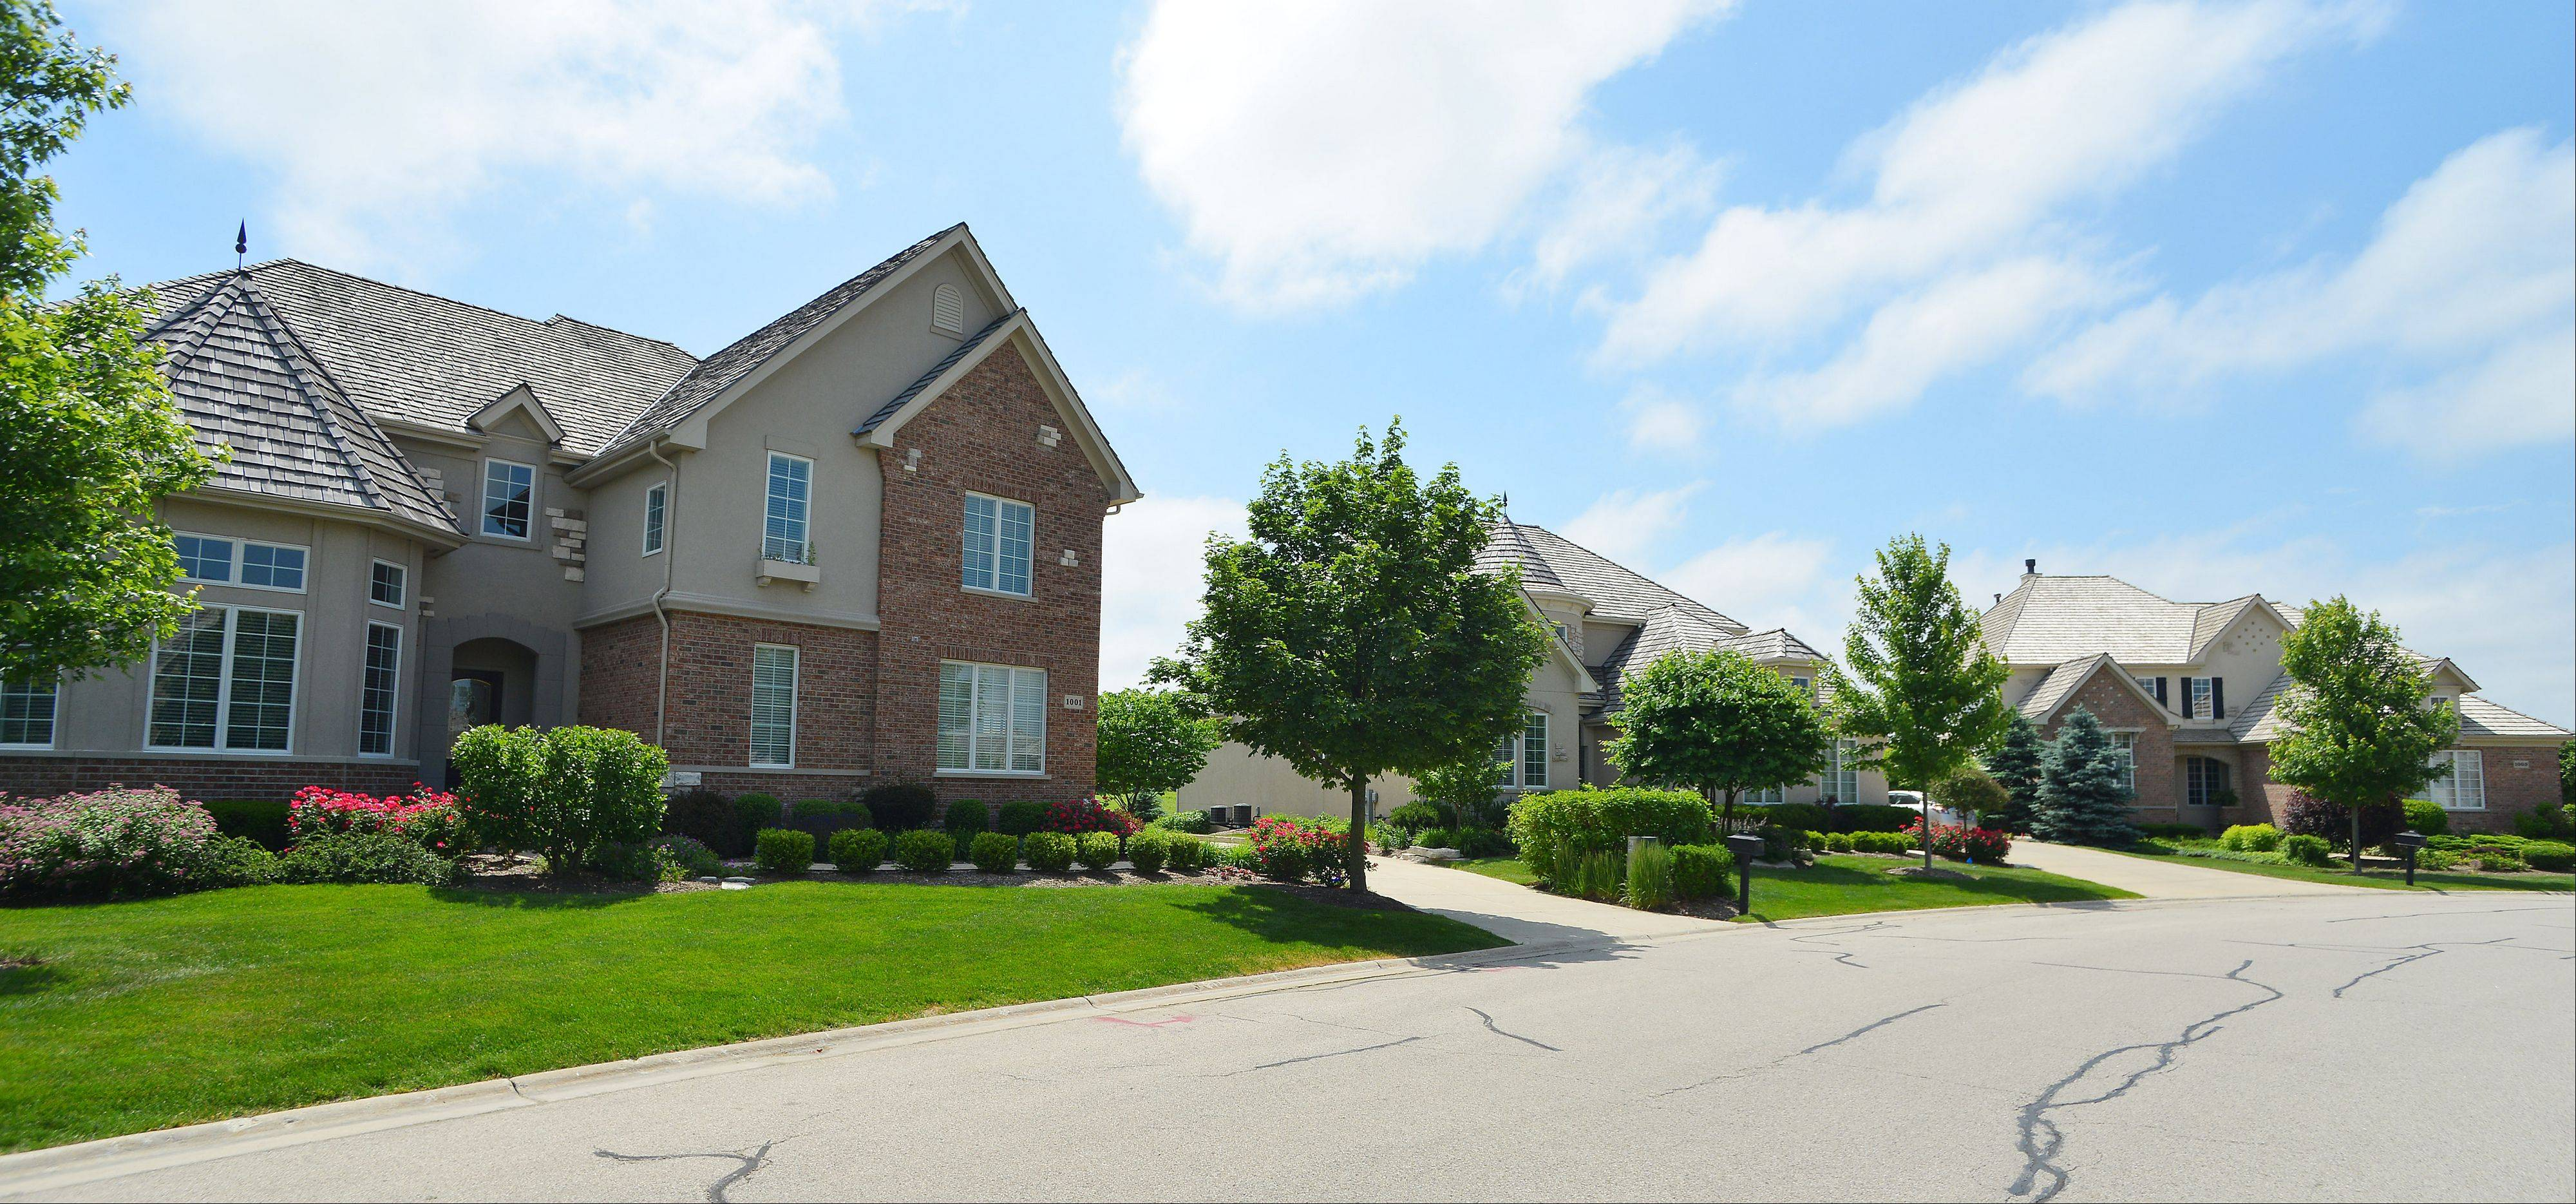 Creekside at Inverness Ridge is a gated community near natural areas including Deer Grove Forest Preserve.